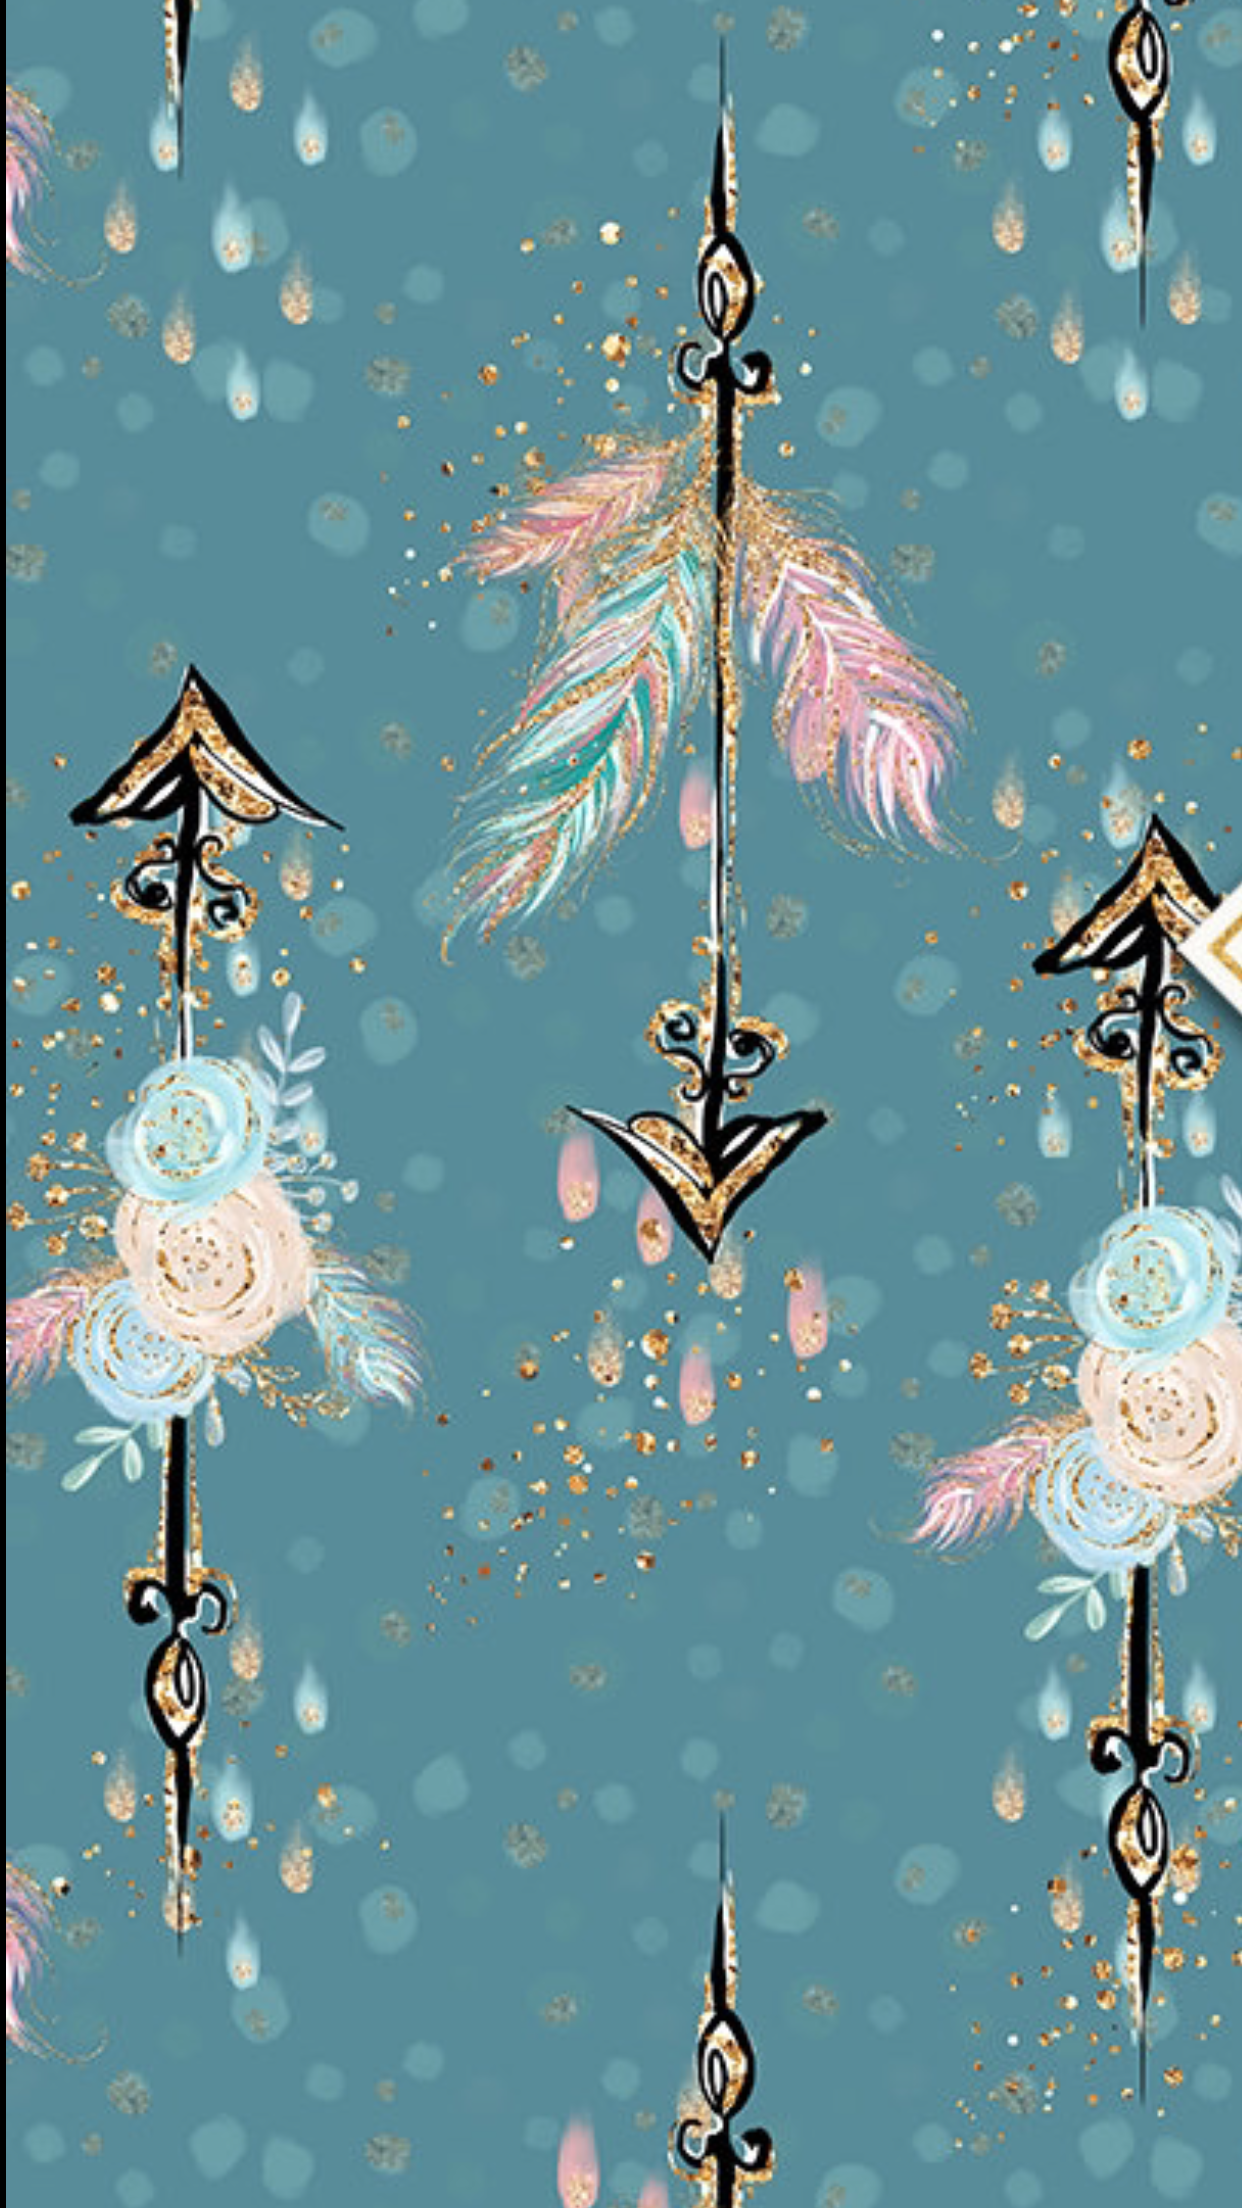 Arrow feathers flowers S P S Misc in 2019 Iphone wallpaper 1242x2208